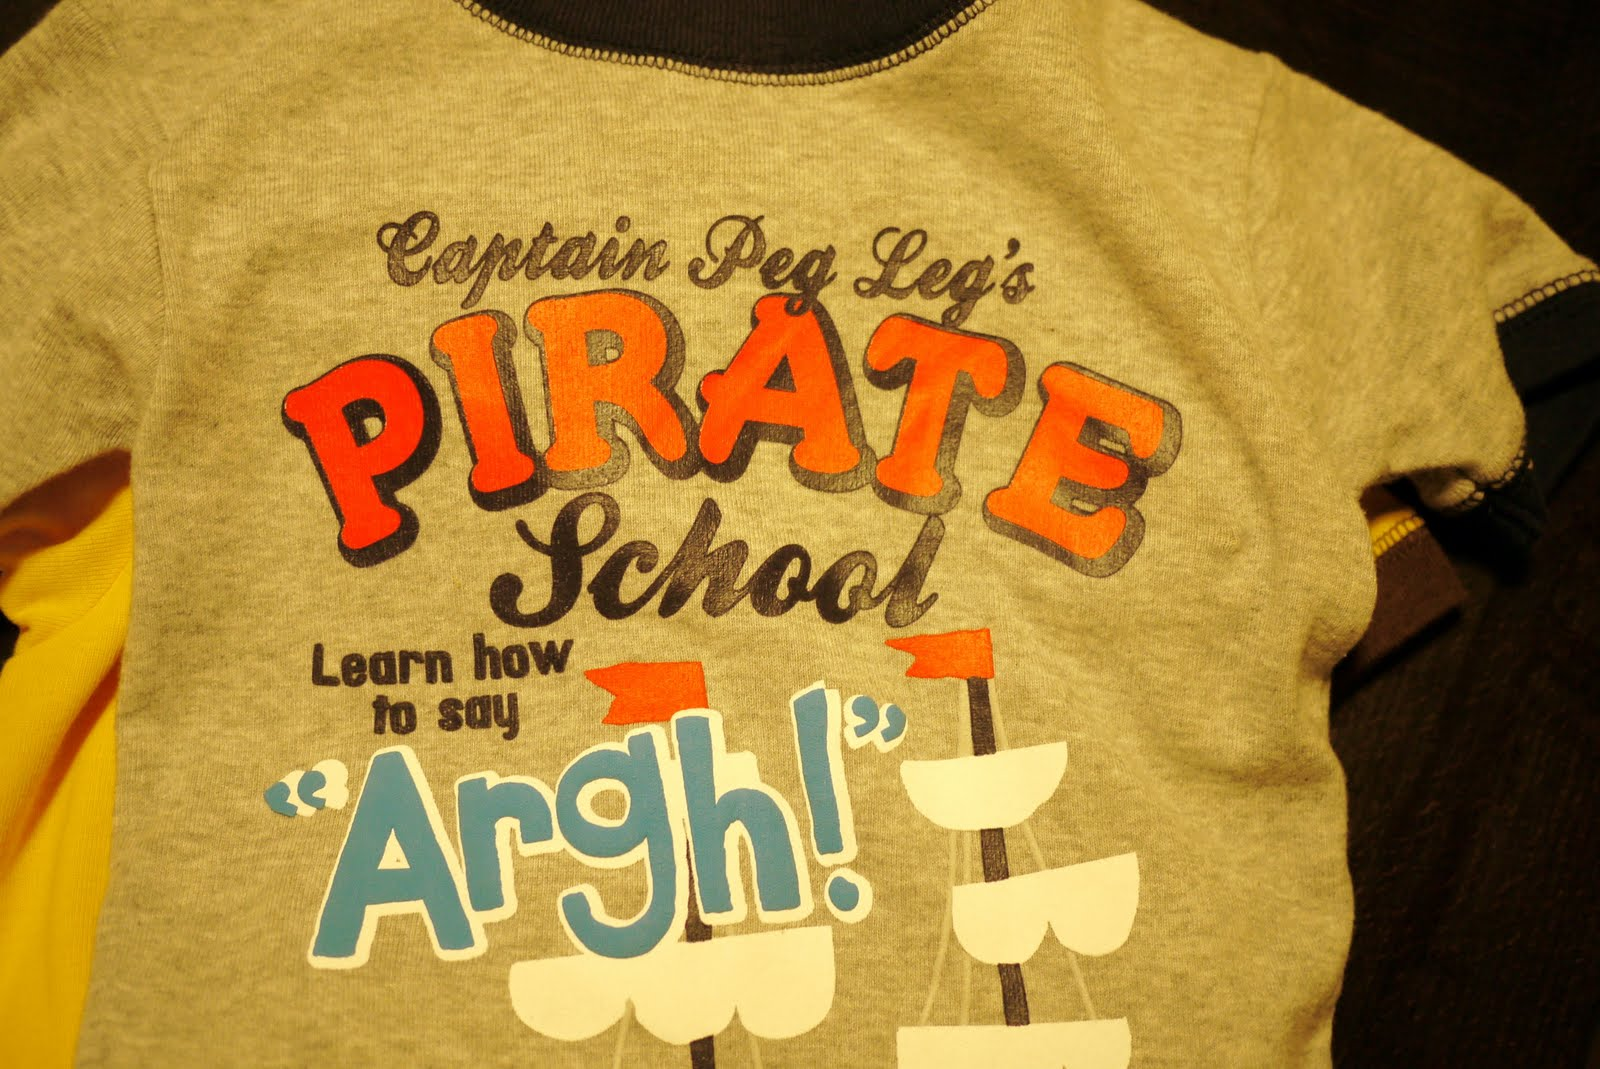 how to say pirate in frisian